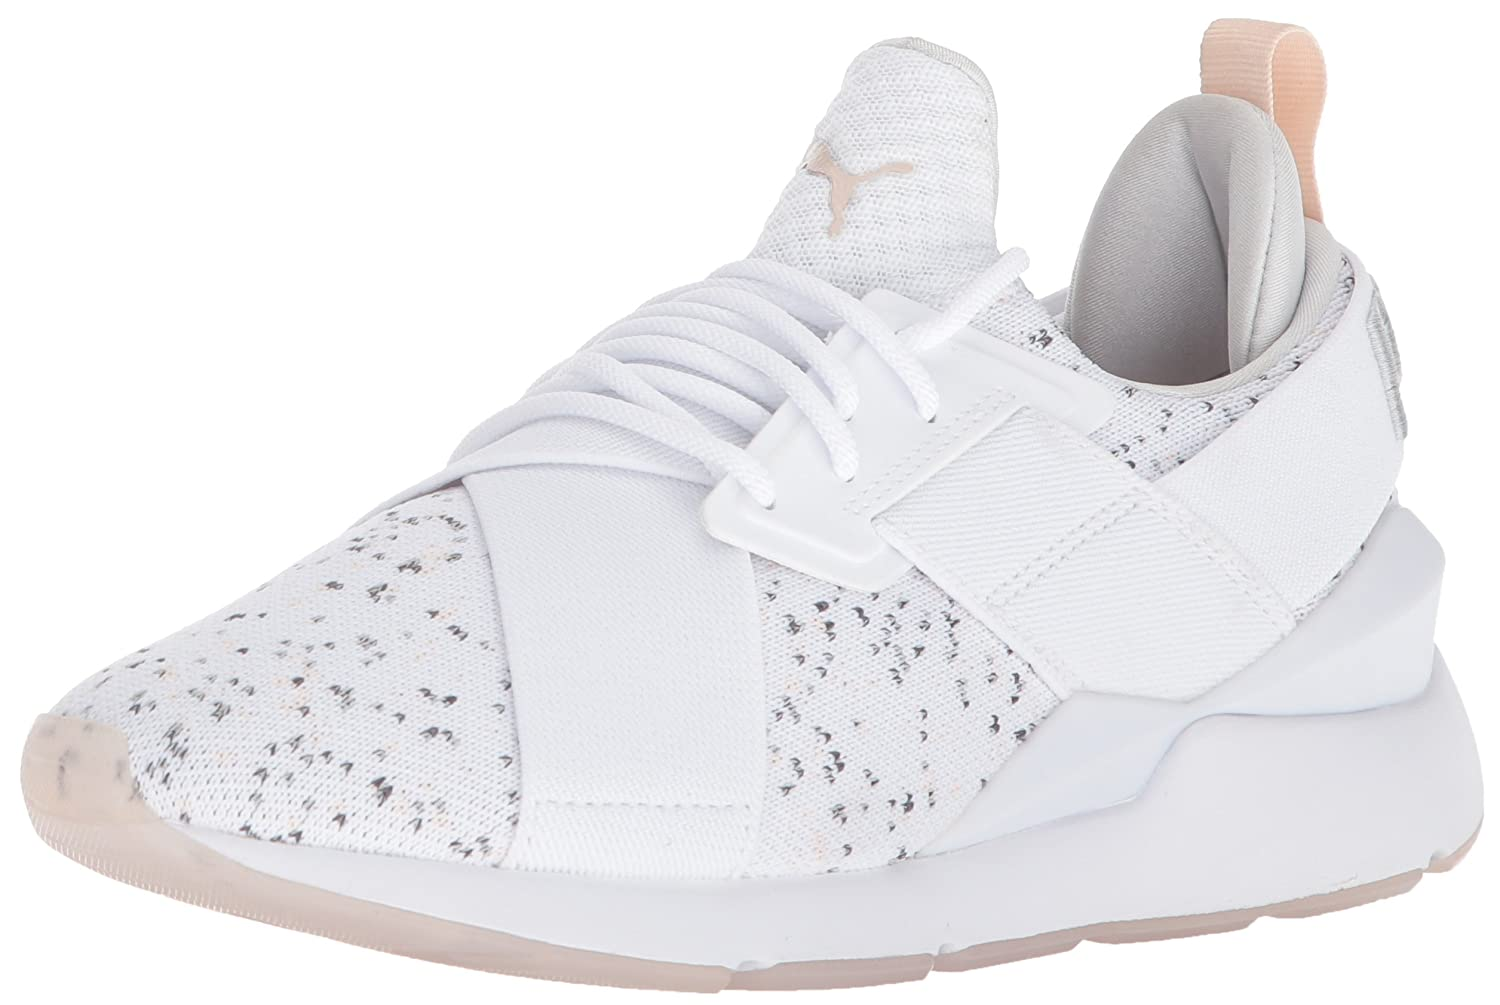 best service ab620 1ecc7 Amazon.com   PUMA Women s Muse Solstice Wn Sneaker   Shoes